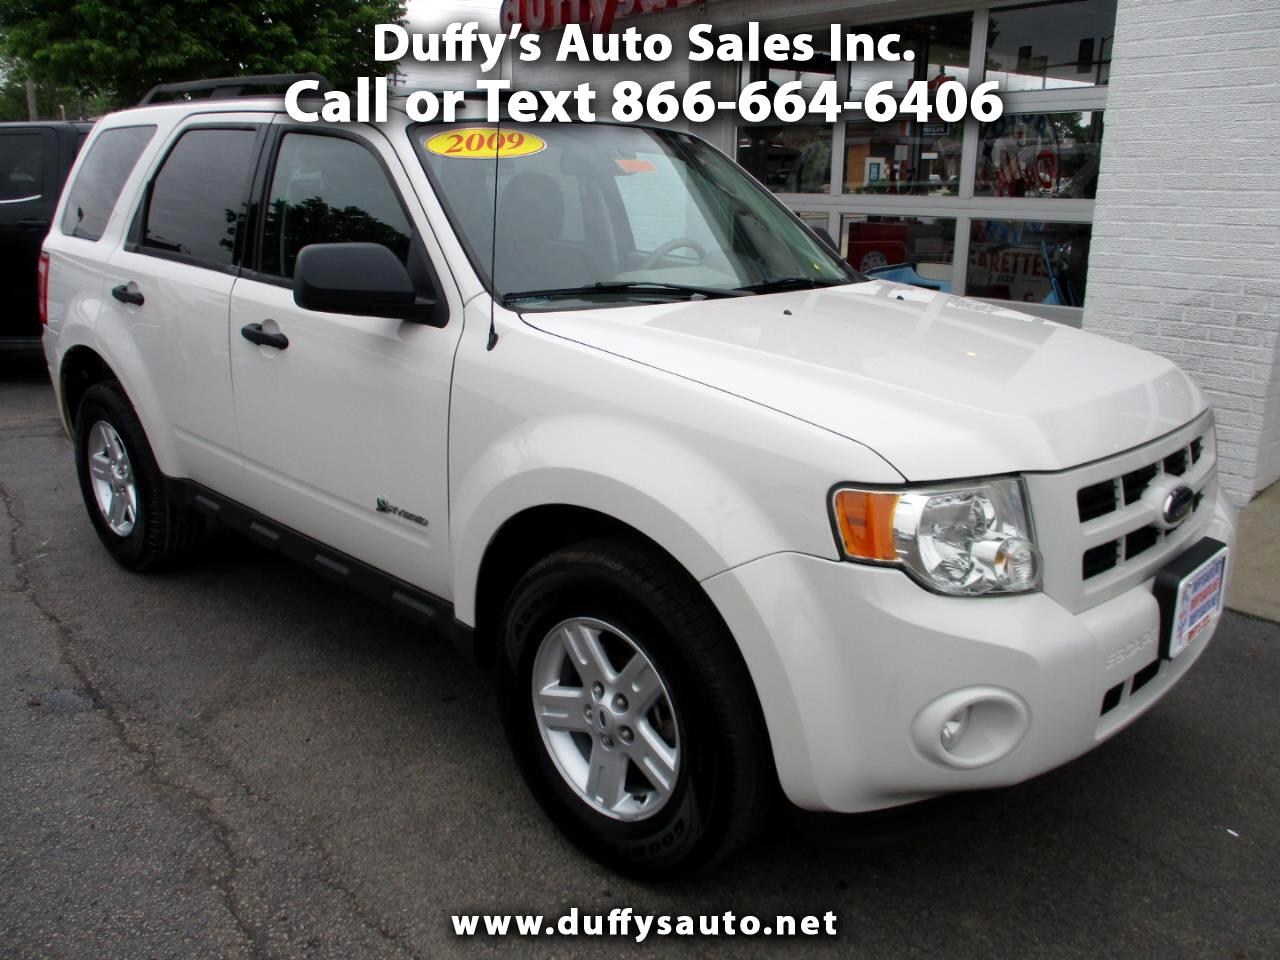 2009 Ford Escape FWD 4dr I4 CVT Hybrid